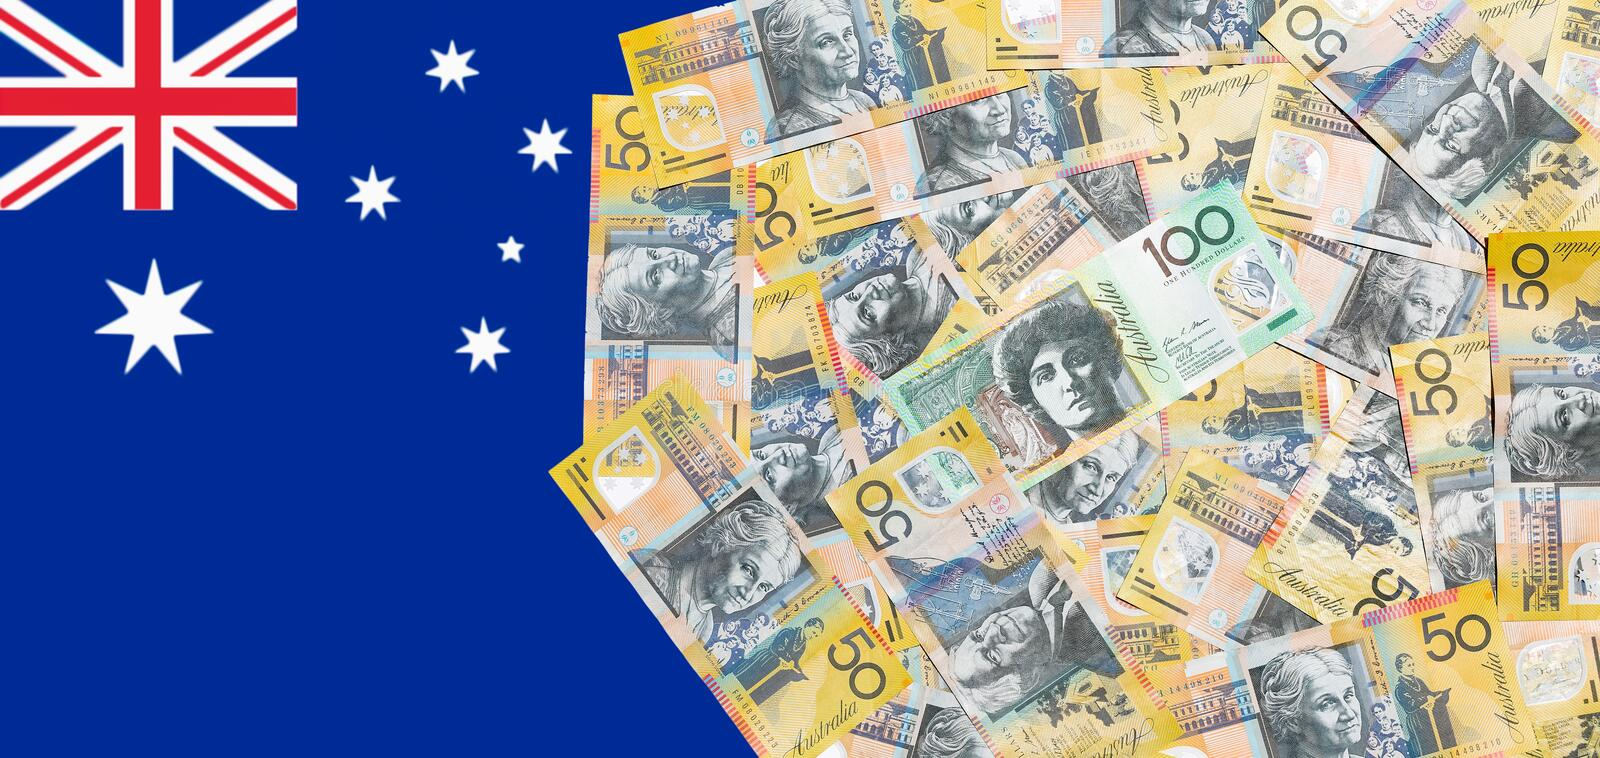 Australian dollar notes. Close up Australian dollar notes for backgound royalty free stock photos